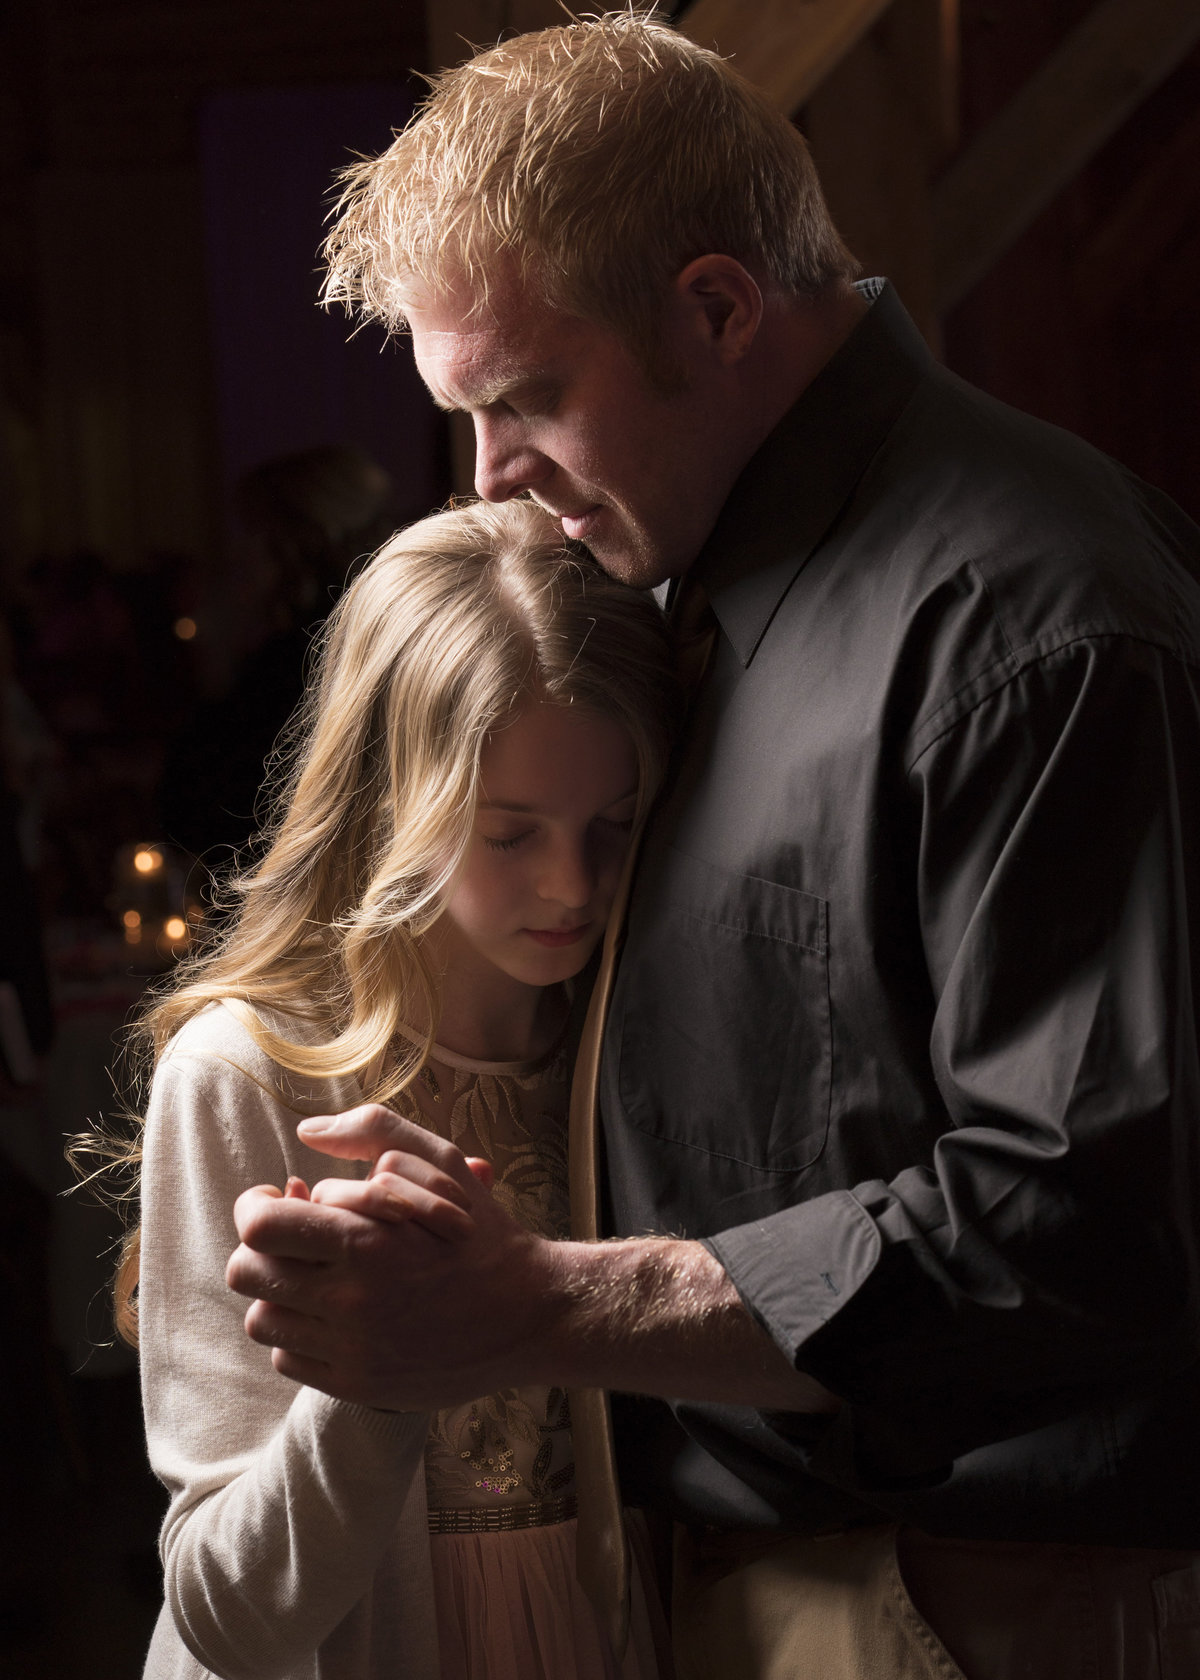 sioux falls photography father daughter dance purity ball south dakota